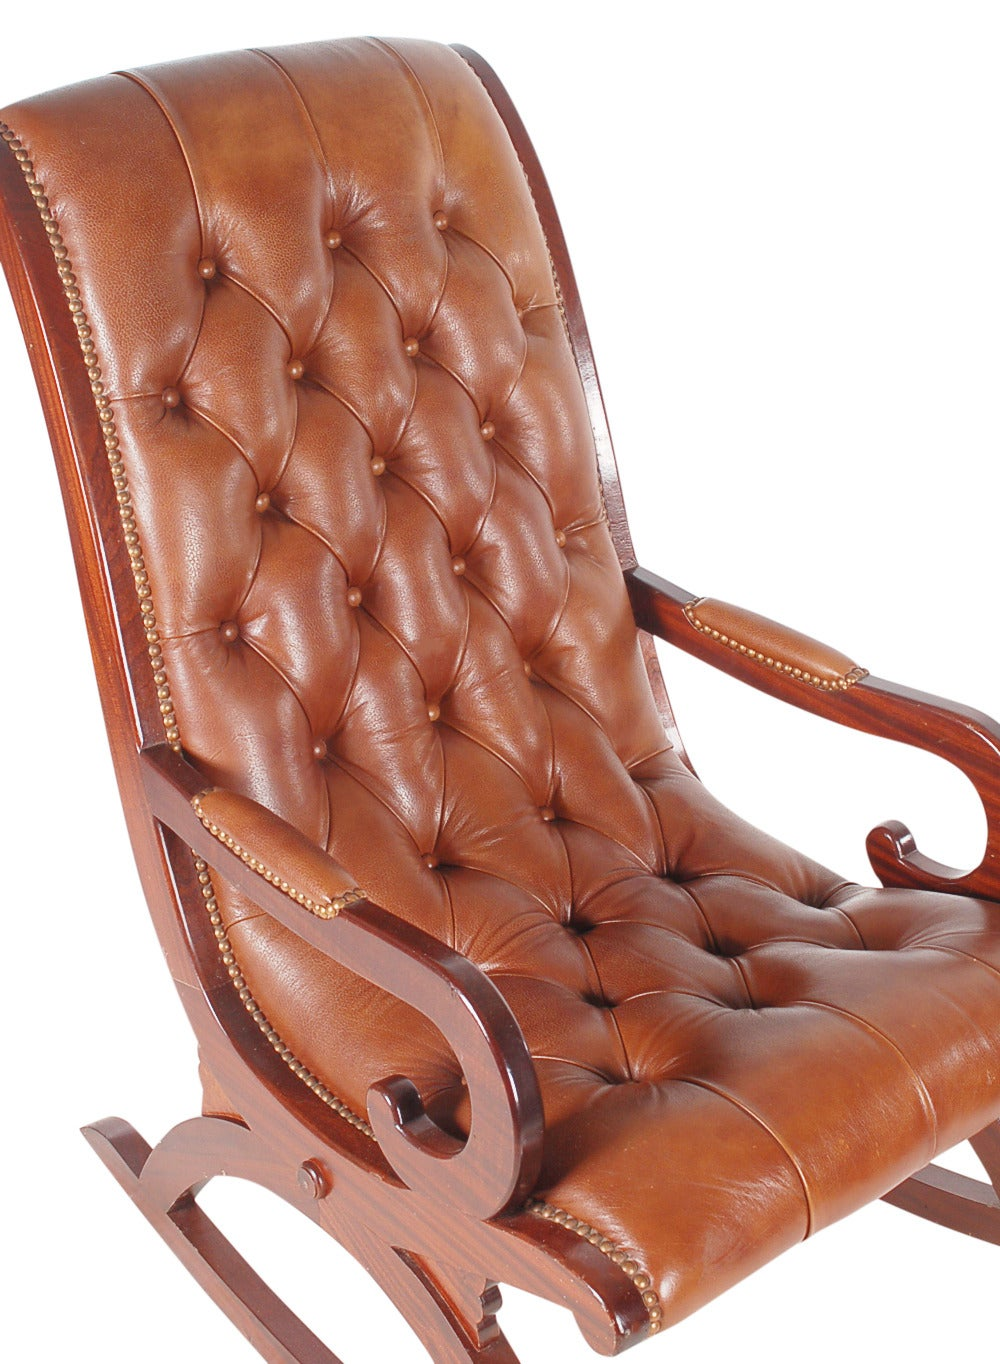 Vintage Leather Chesterfield Style Mahogany Rocking Chair For Sale at ...